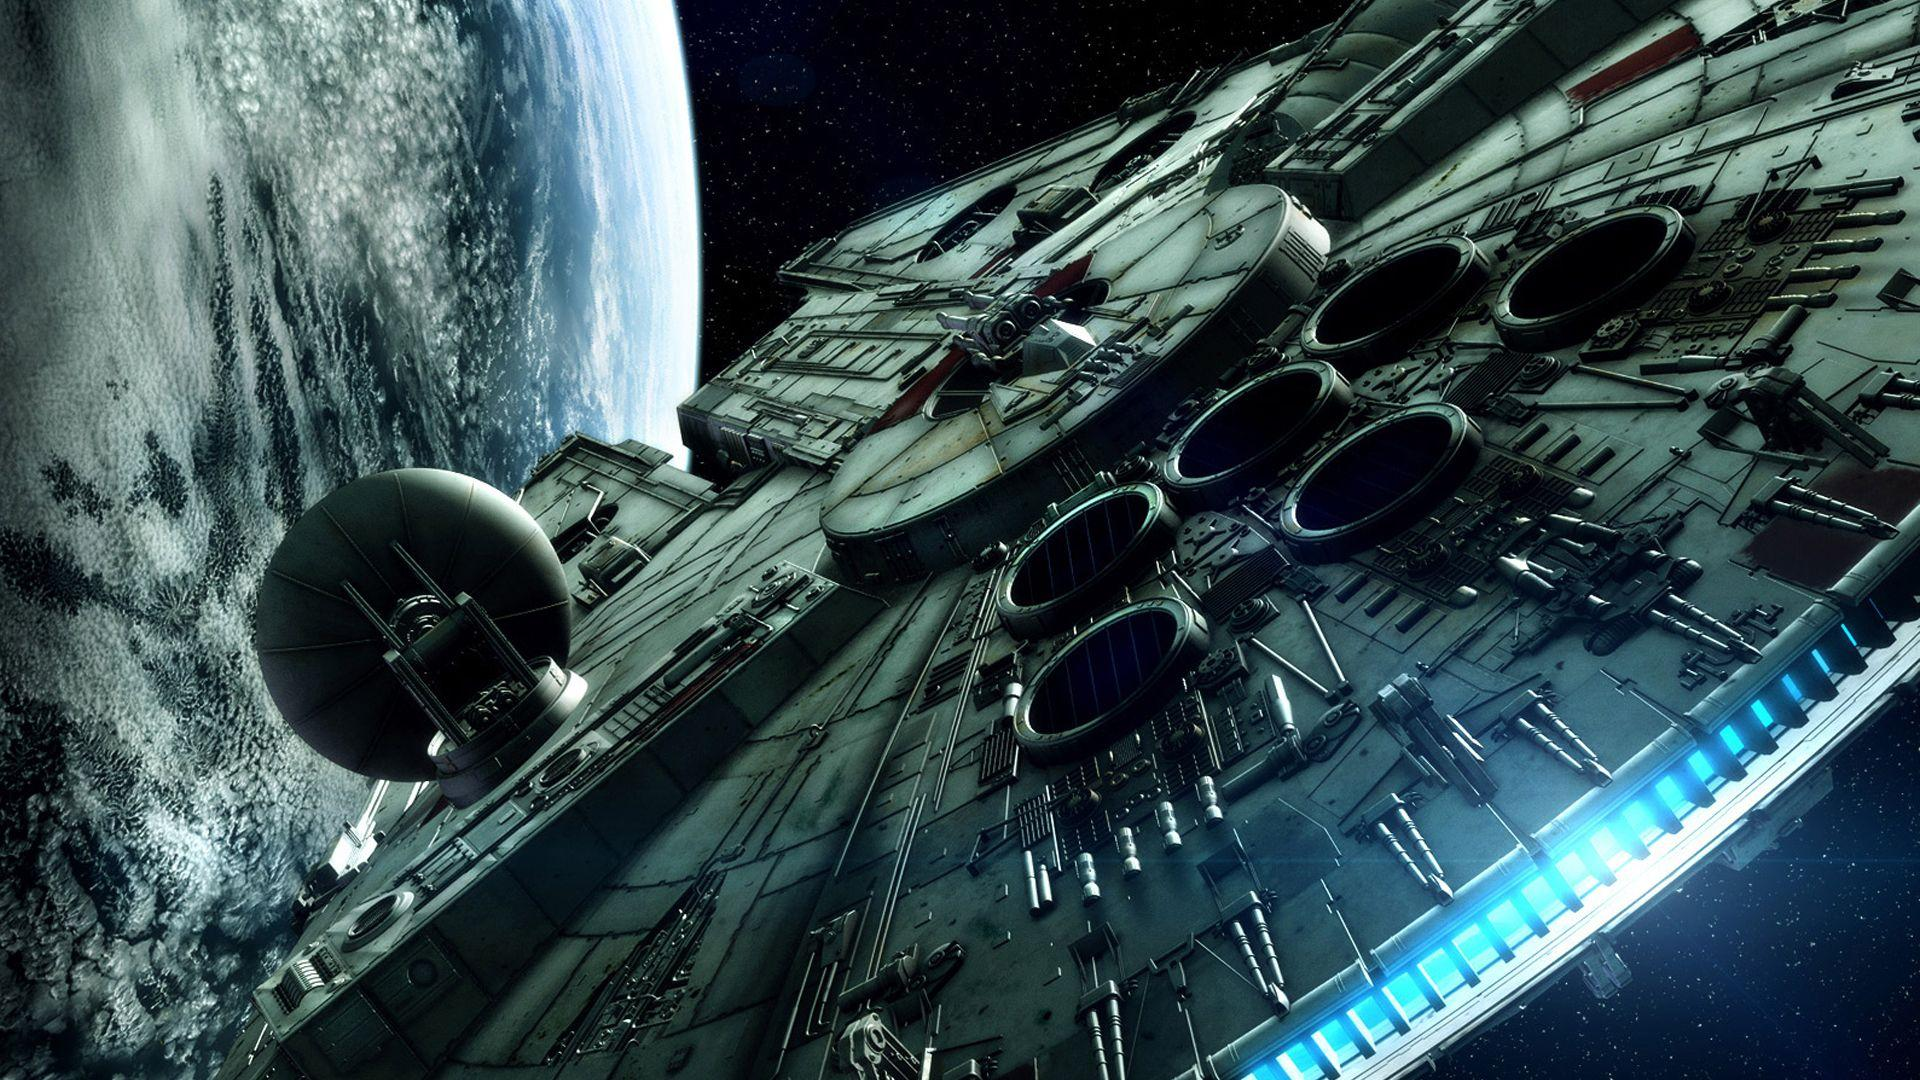 Star Wars Backgrounds Hd Wallpaper Cave